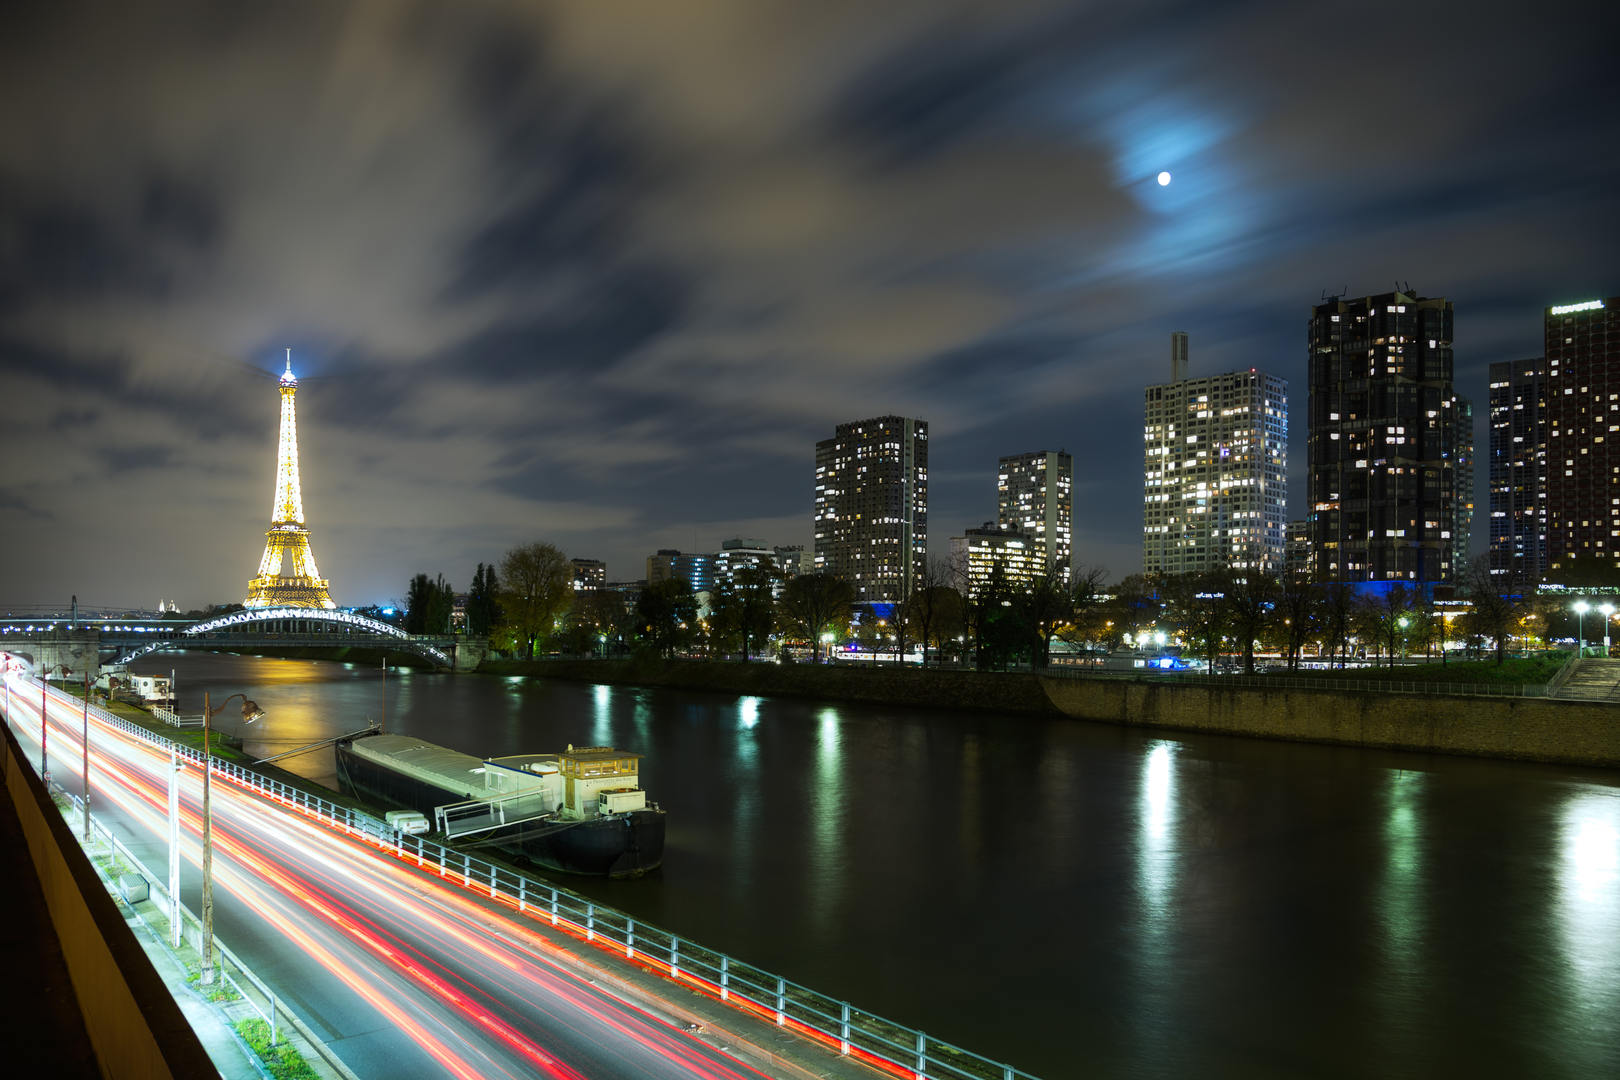 The way to the Eiffel Tower